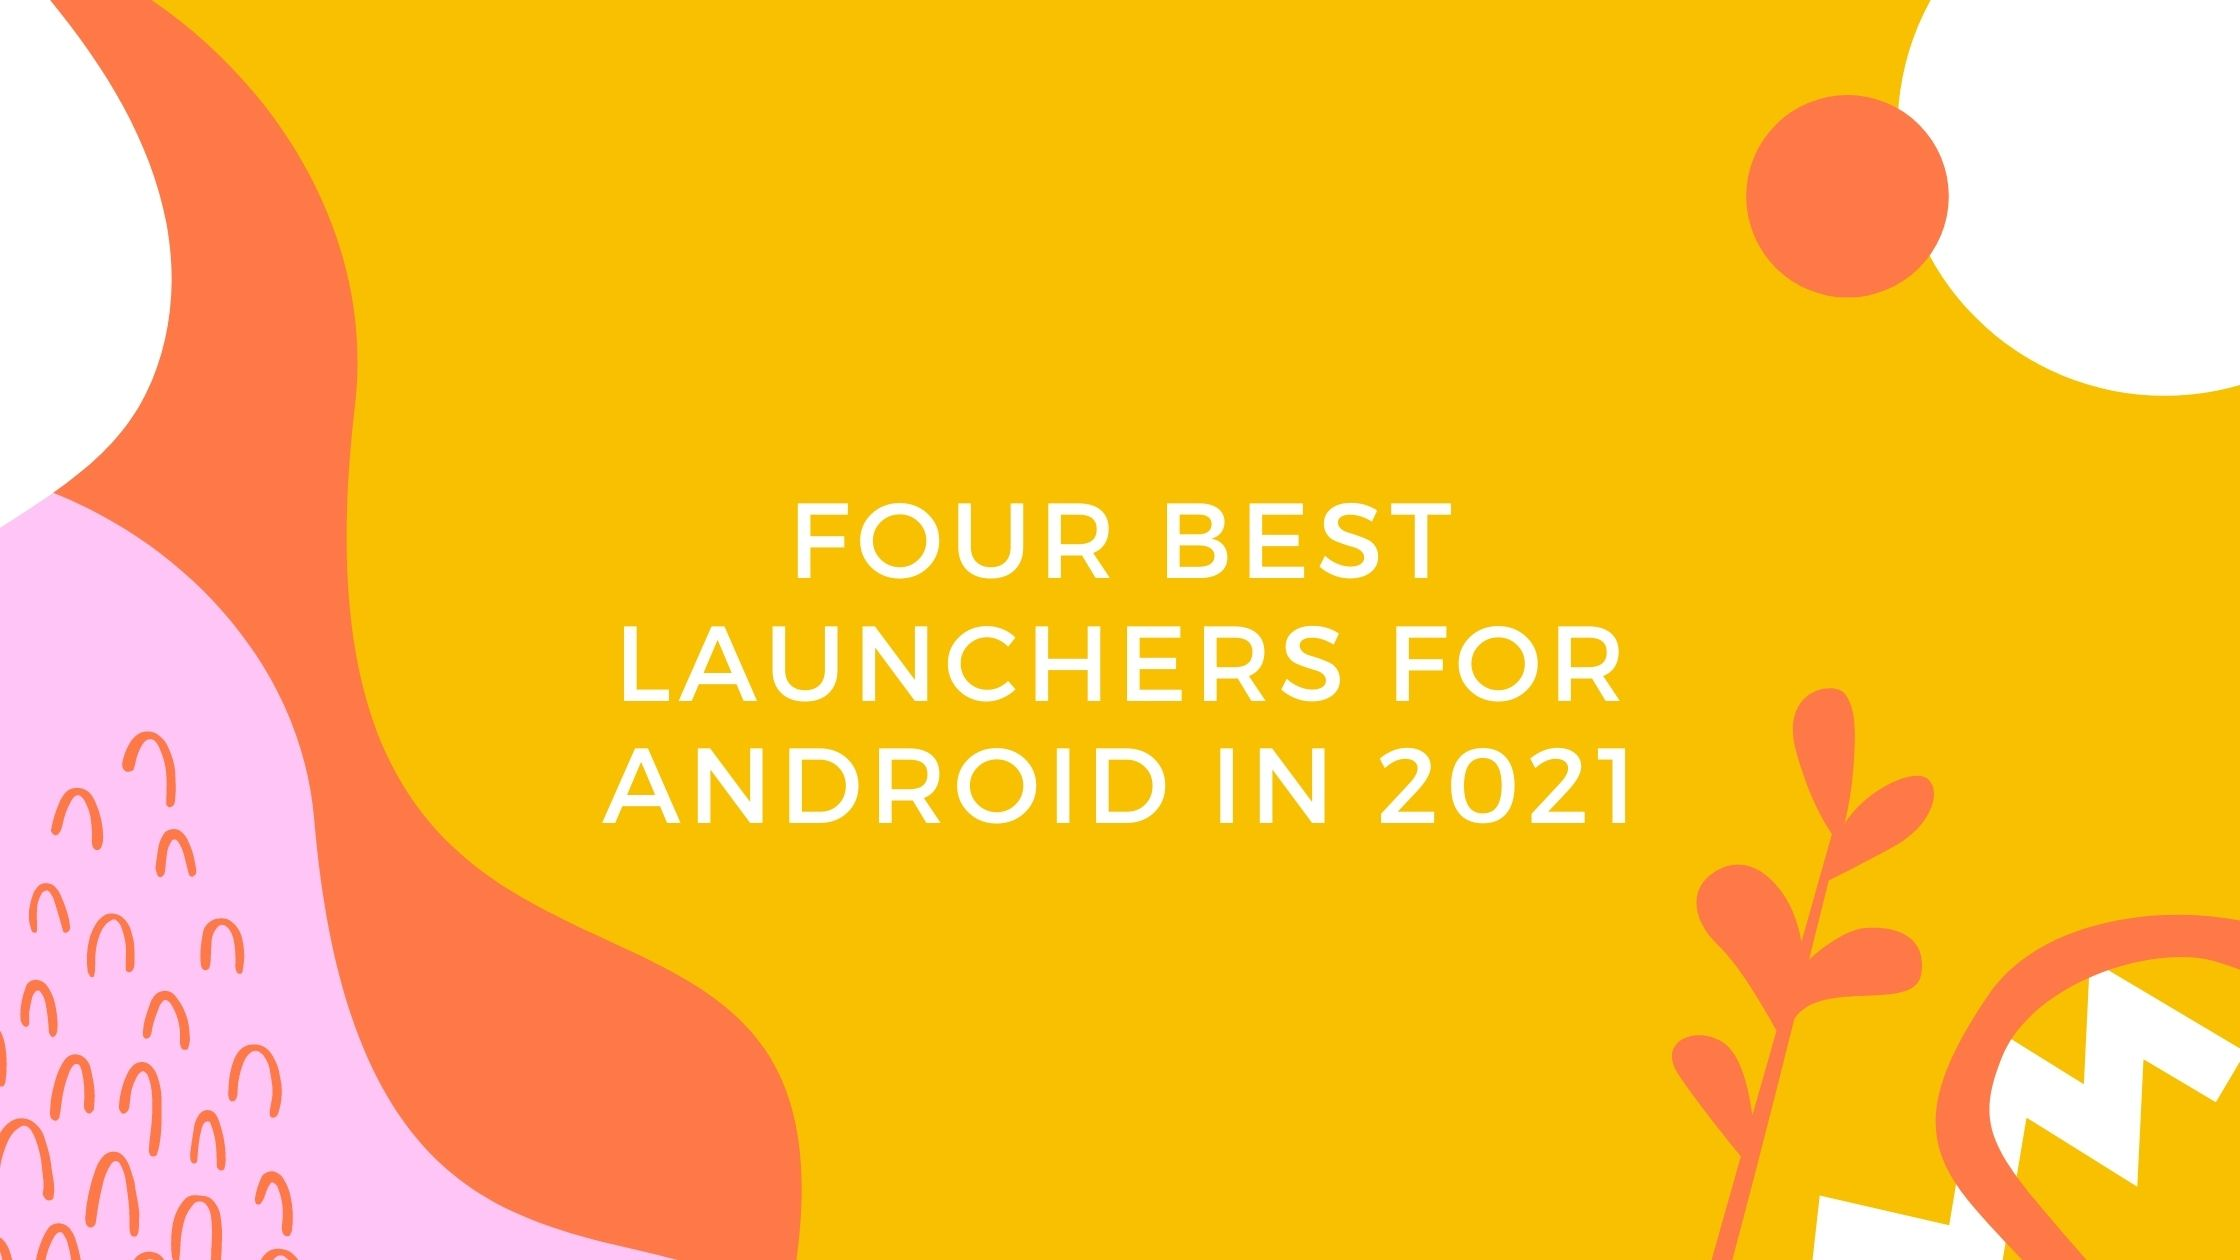 Four-best-launchers-for-Android-in-2021